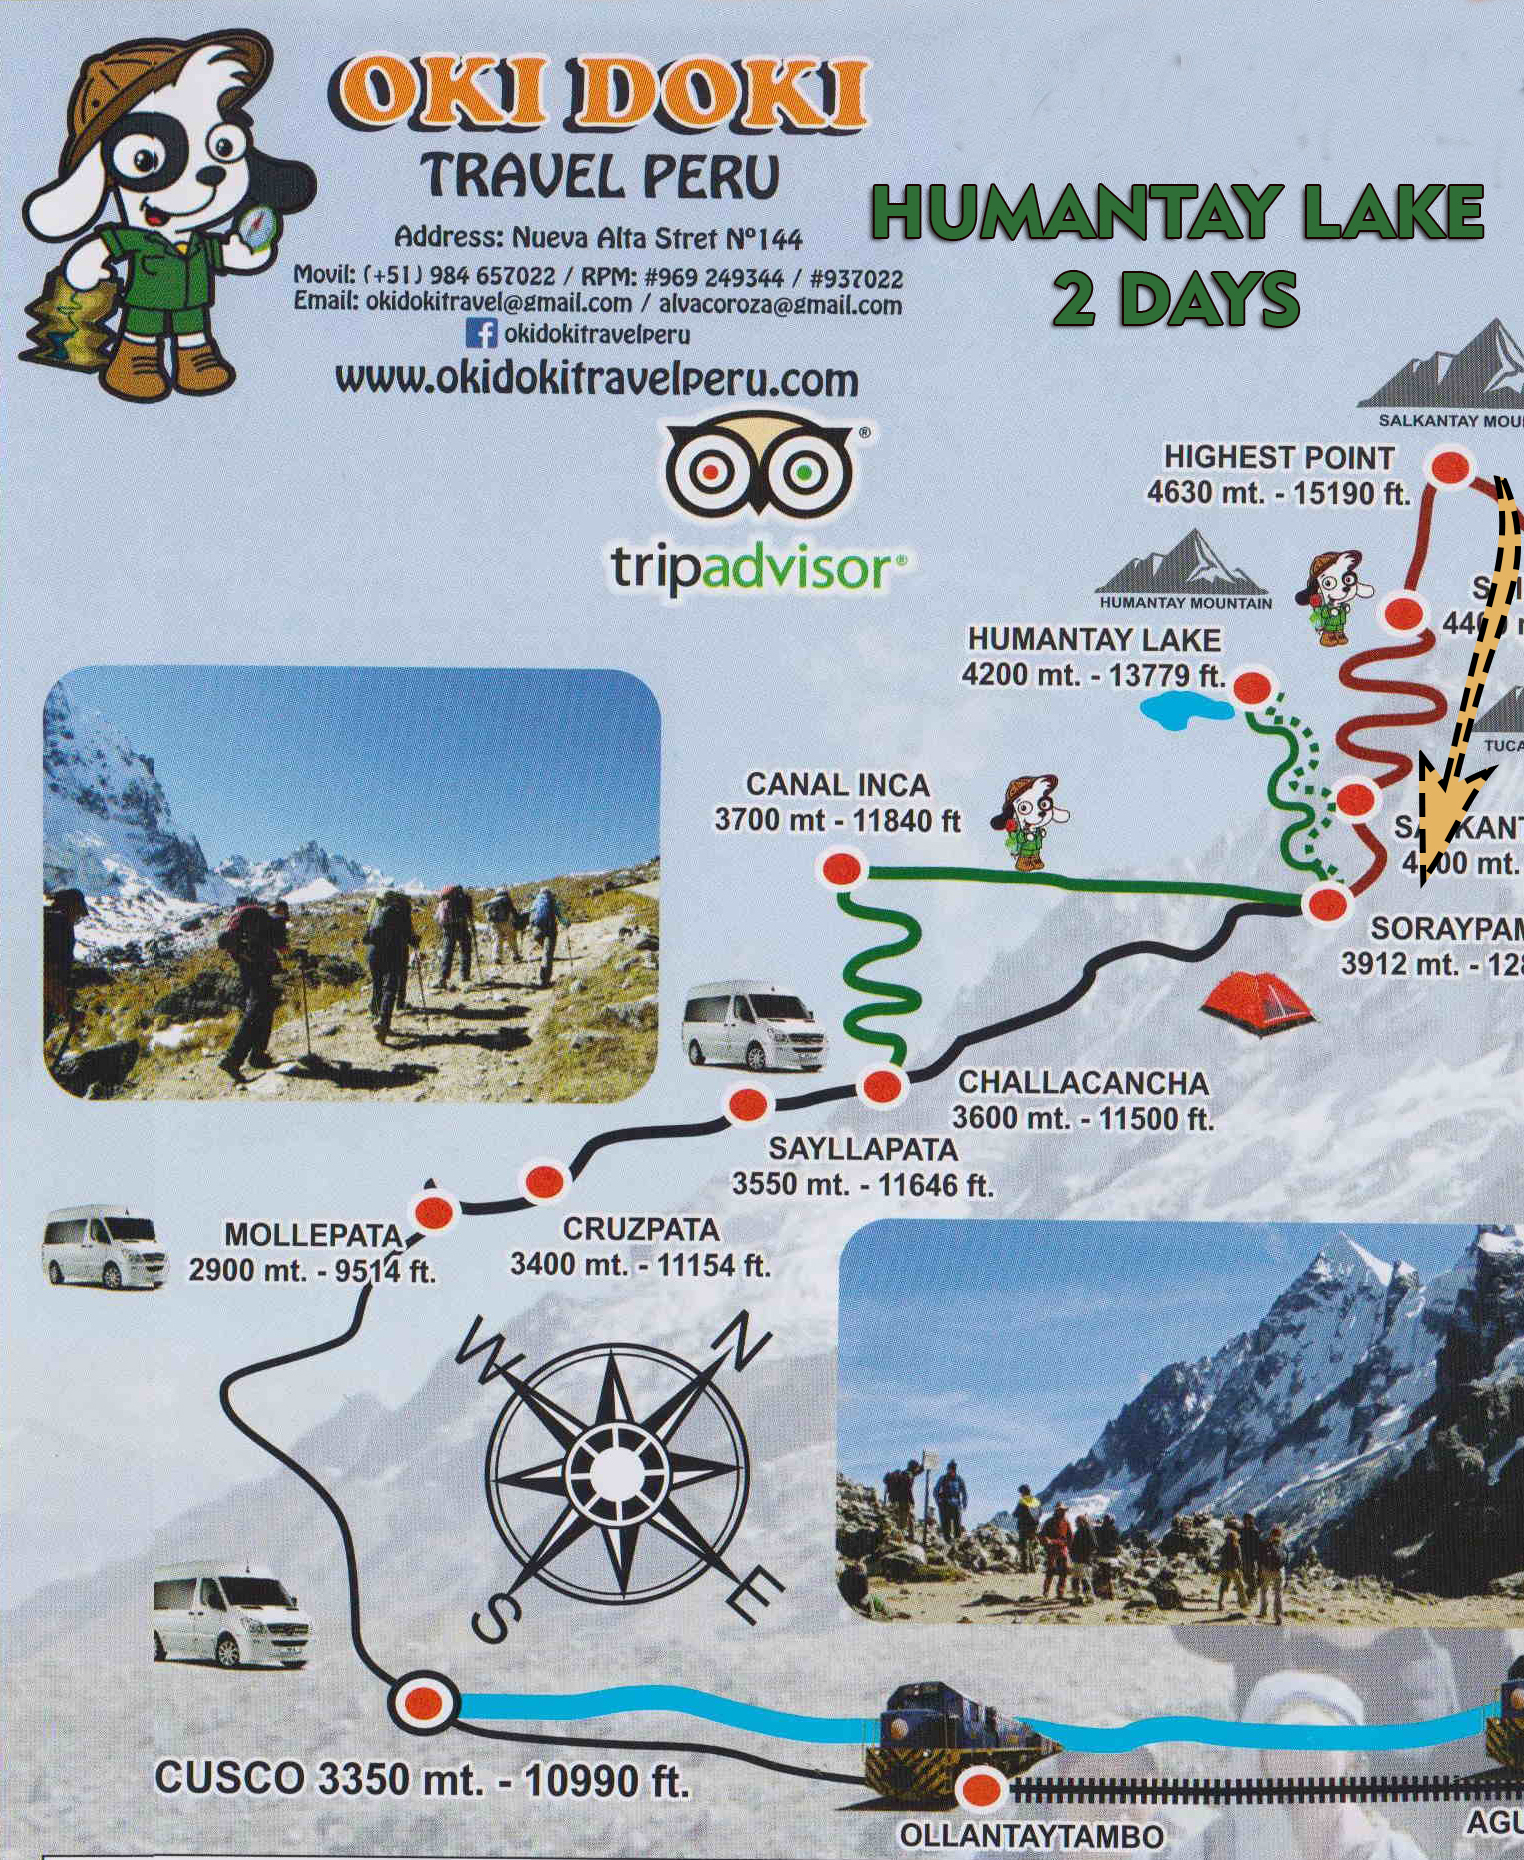 TOURS MAP: Humantay Lake Tour 2 days / 1 night - Okidoki Travel Peru